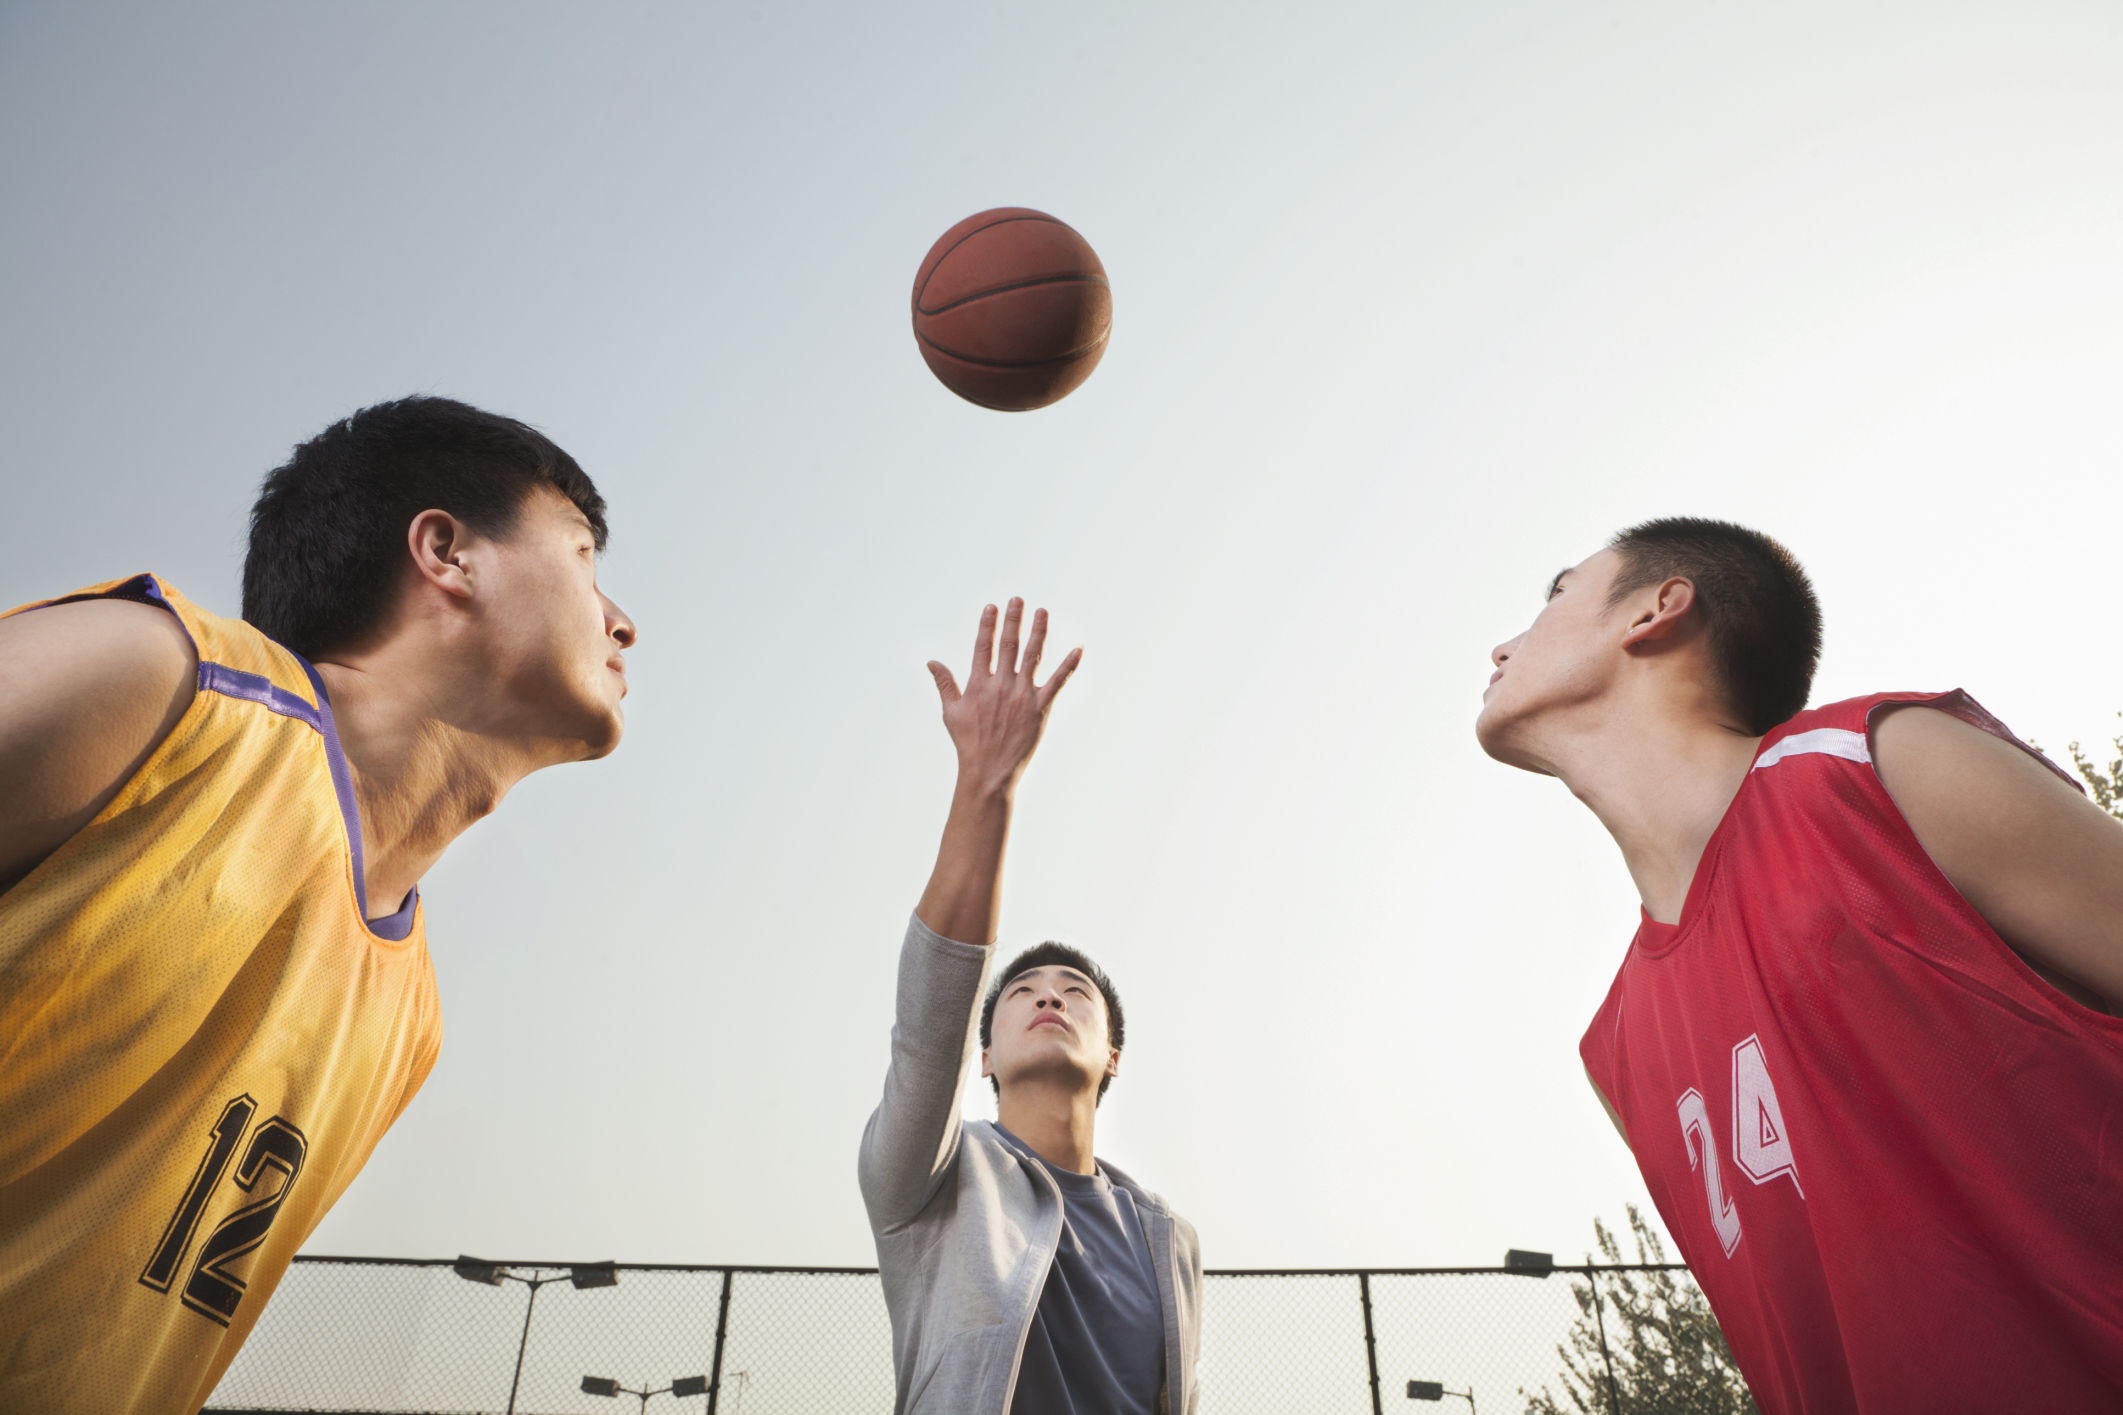 How to Get in Good Basketball Shape pics